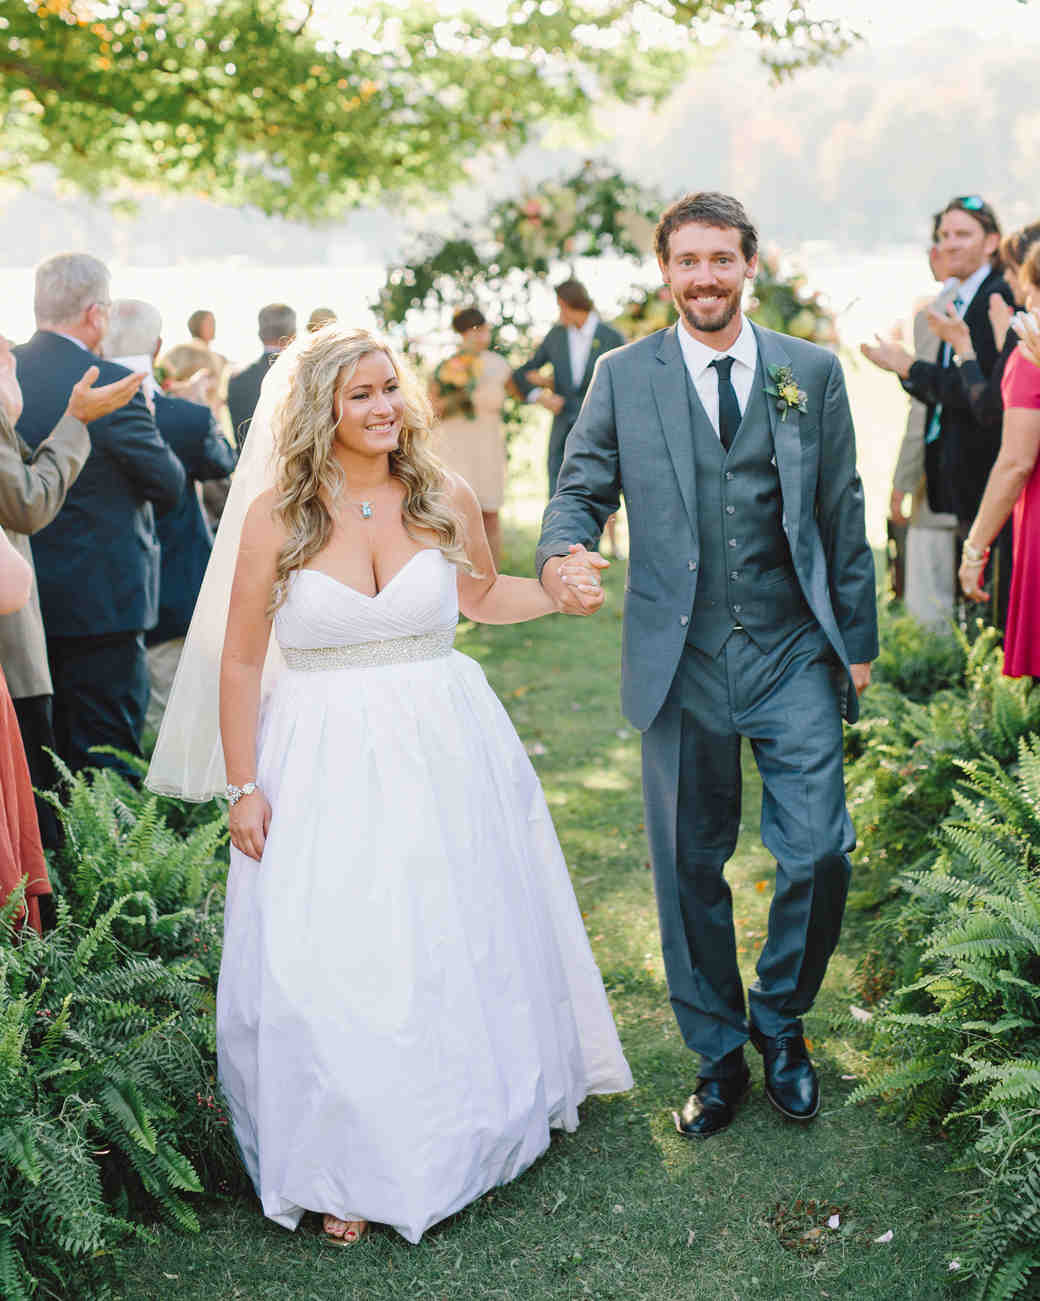 Lizzy and Bucky's Wedding Video From Their Lakeside Celebration